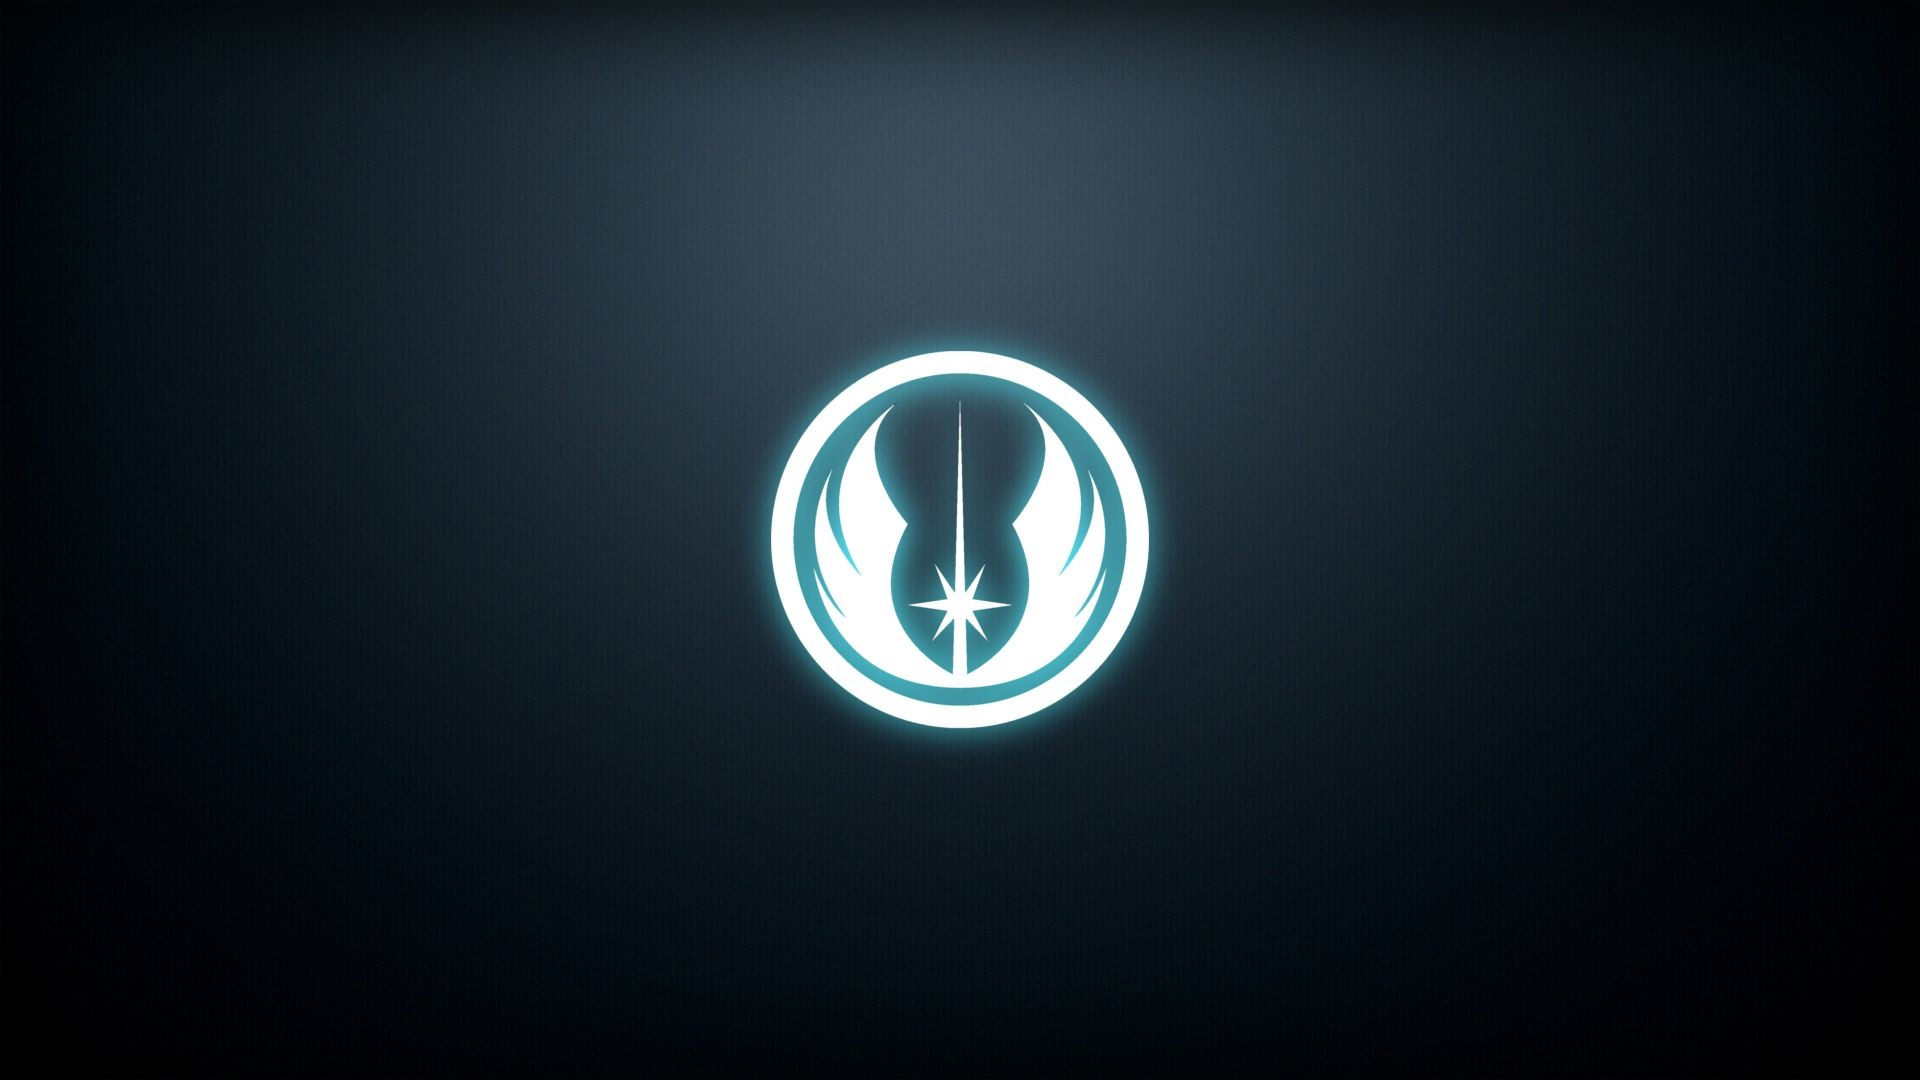 A wallpaper you guys might like. The Jedi Order emblem. I'll do